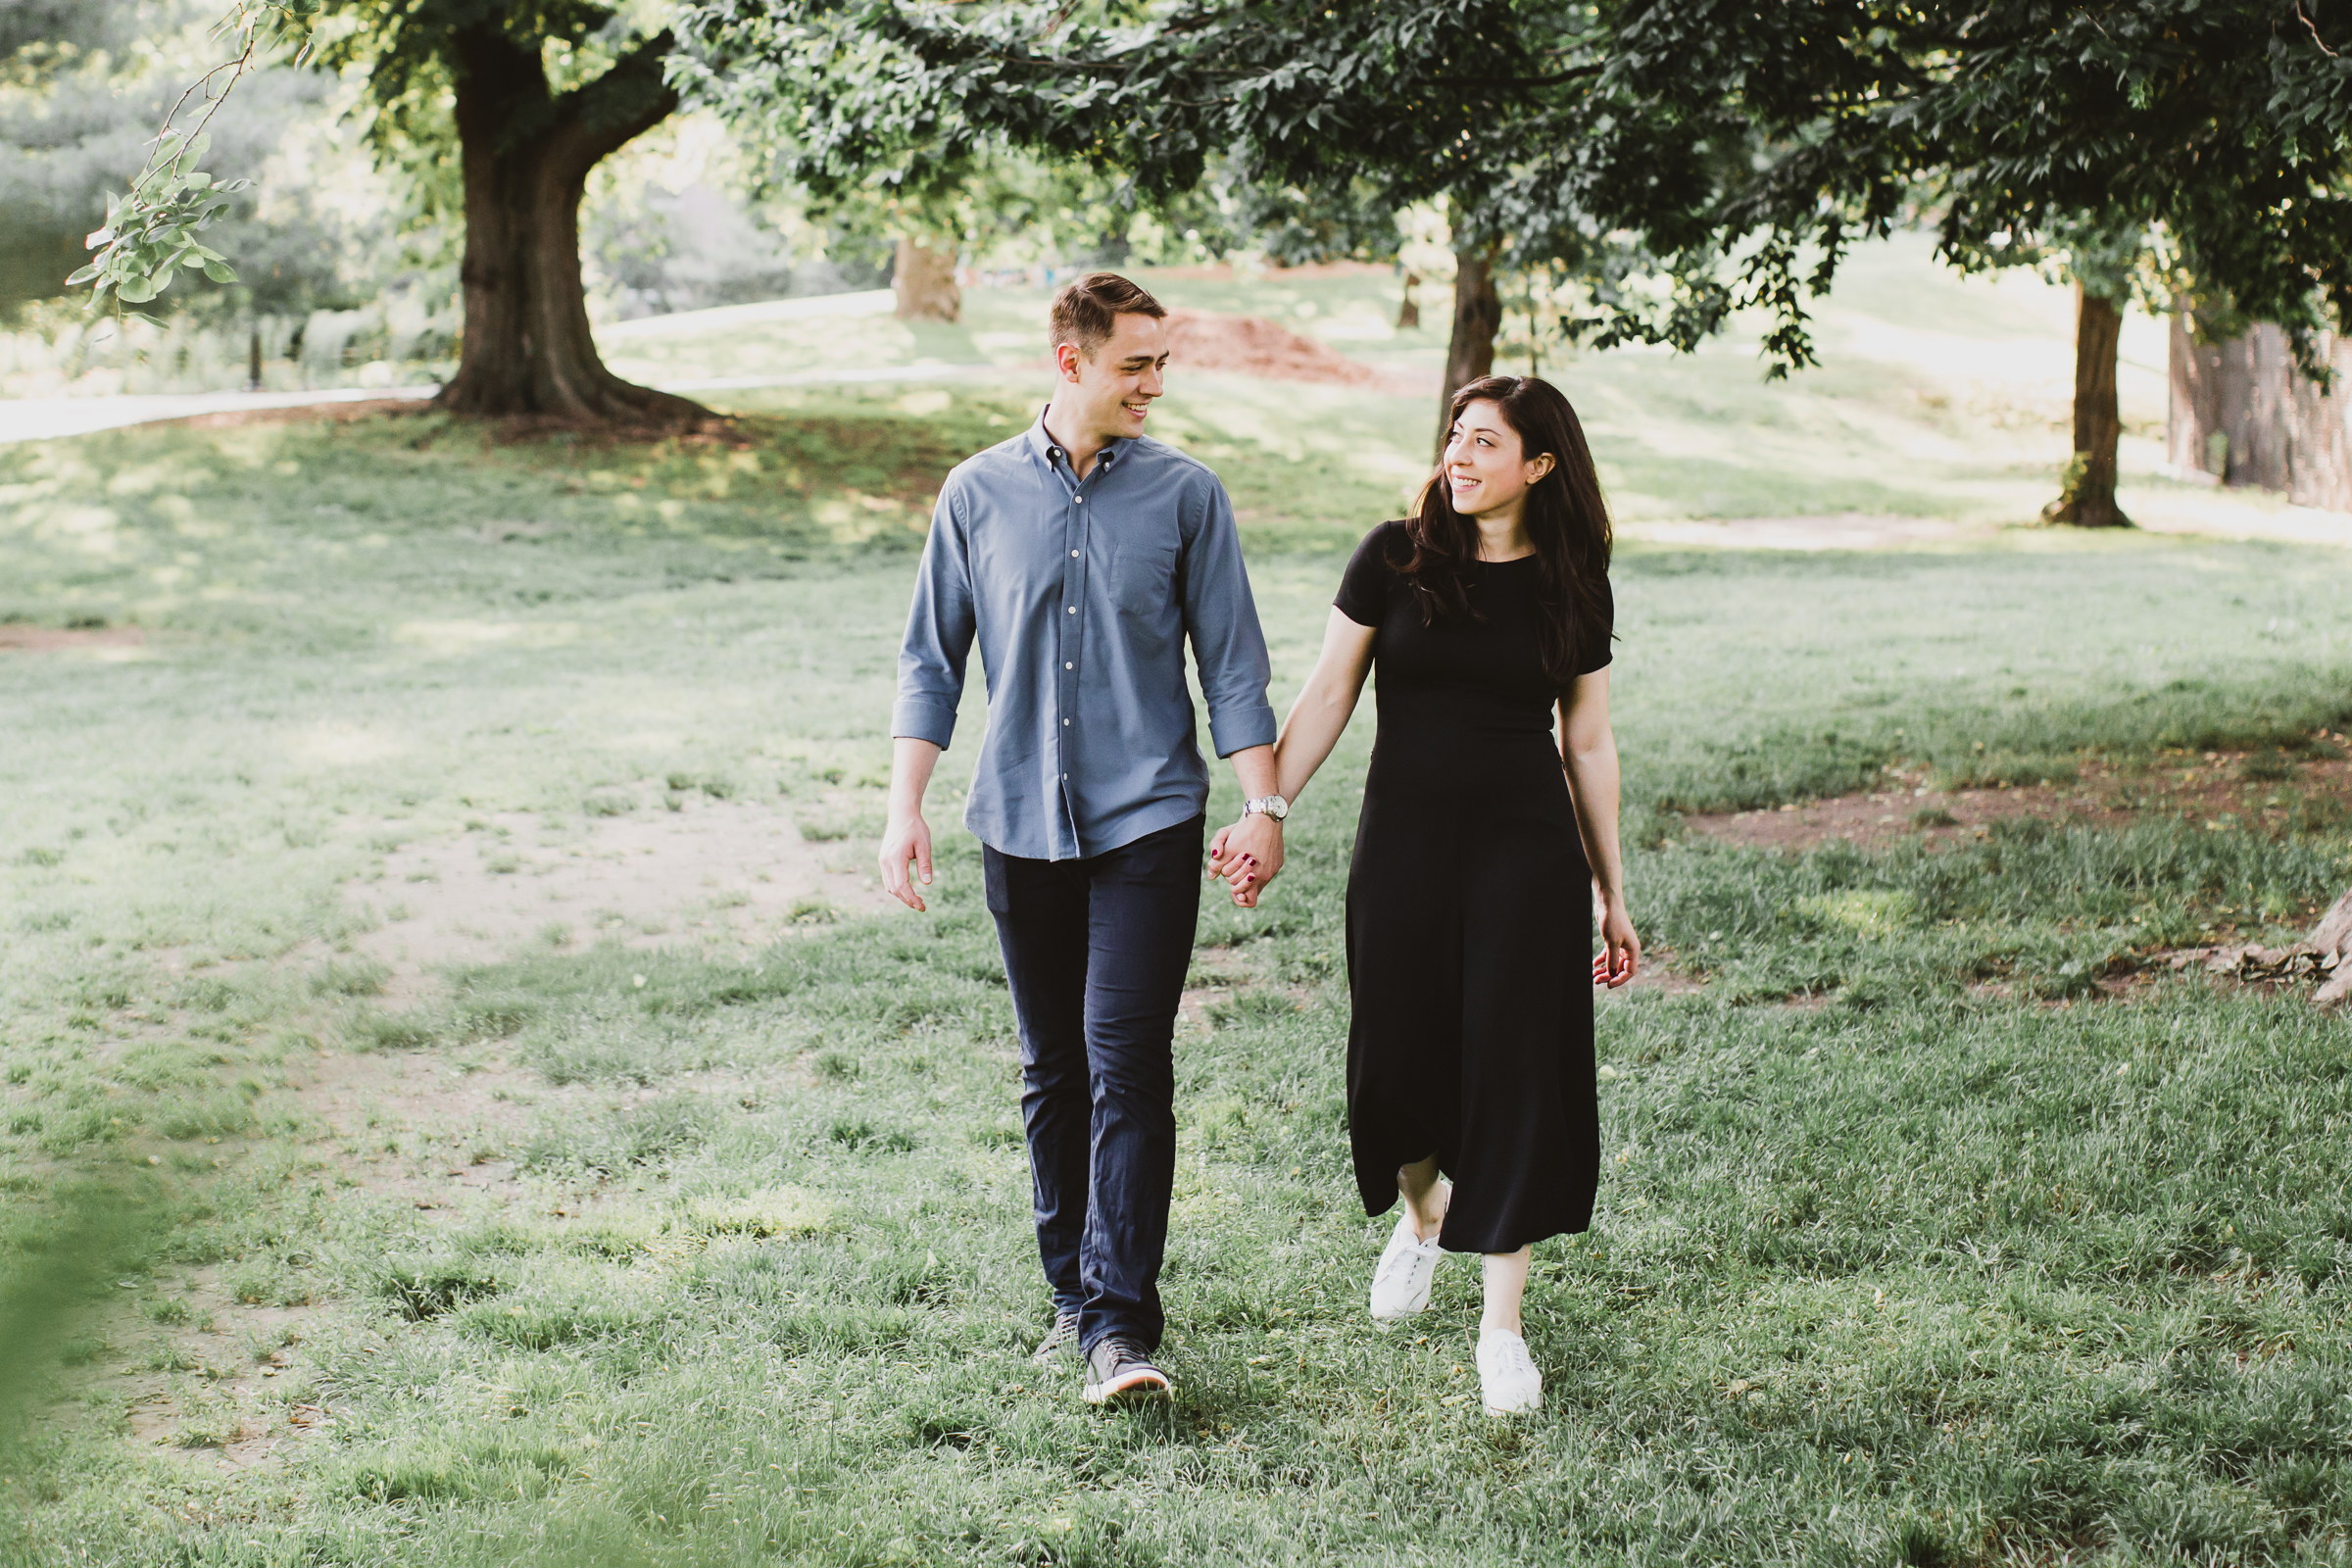 Fort-Greene-Park-Brooklyn-Engagement-Photos-2.jpg